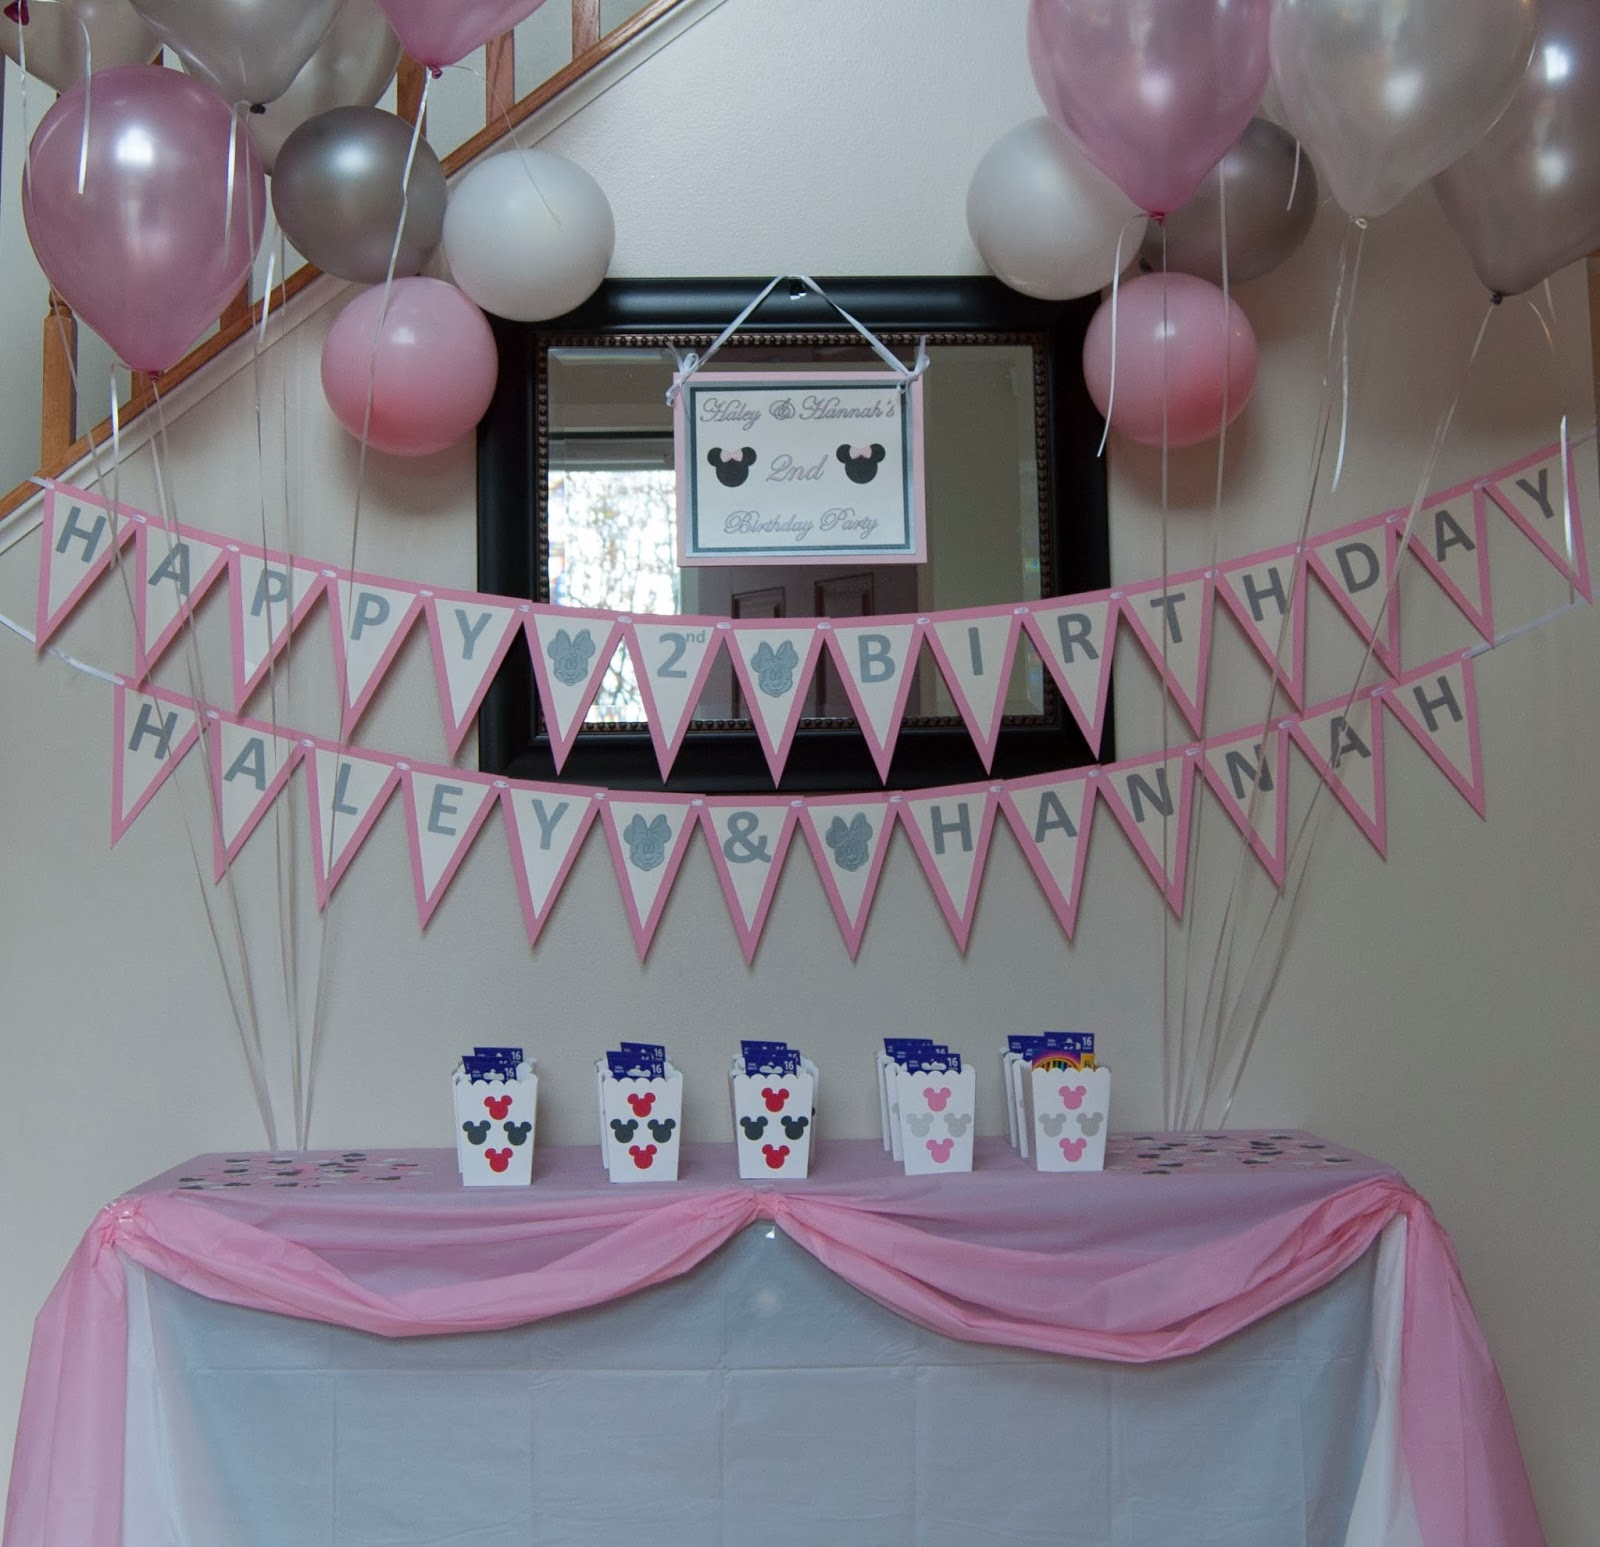 Notes By Sherry: The Twin's 2nd Birthday Party